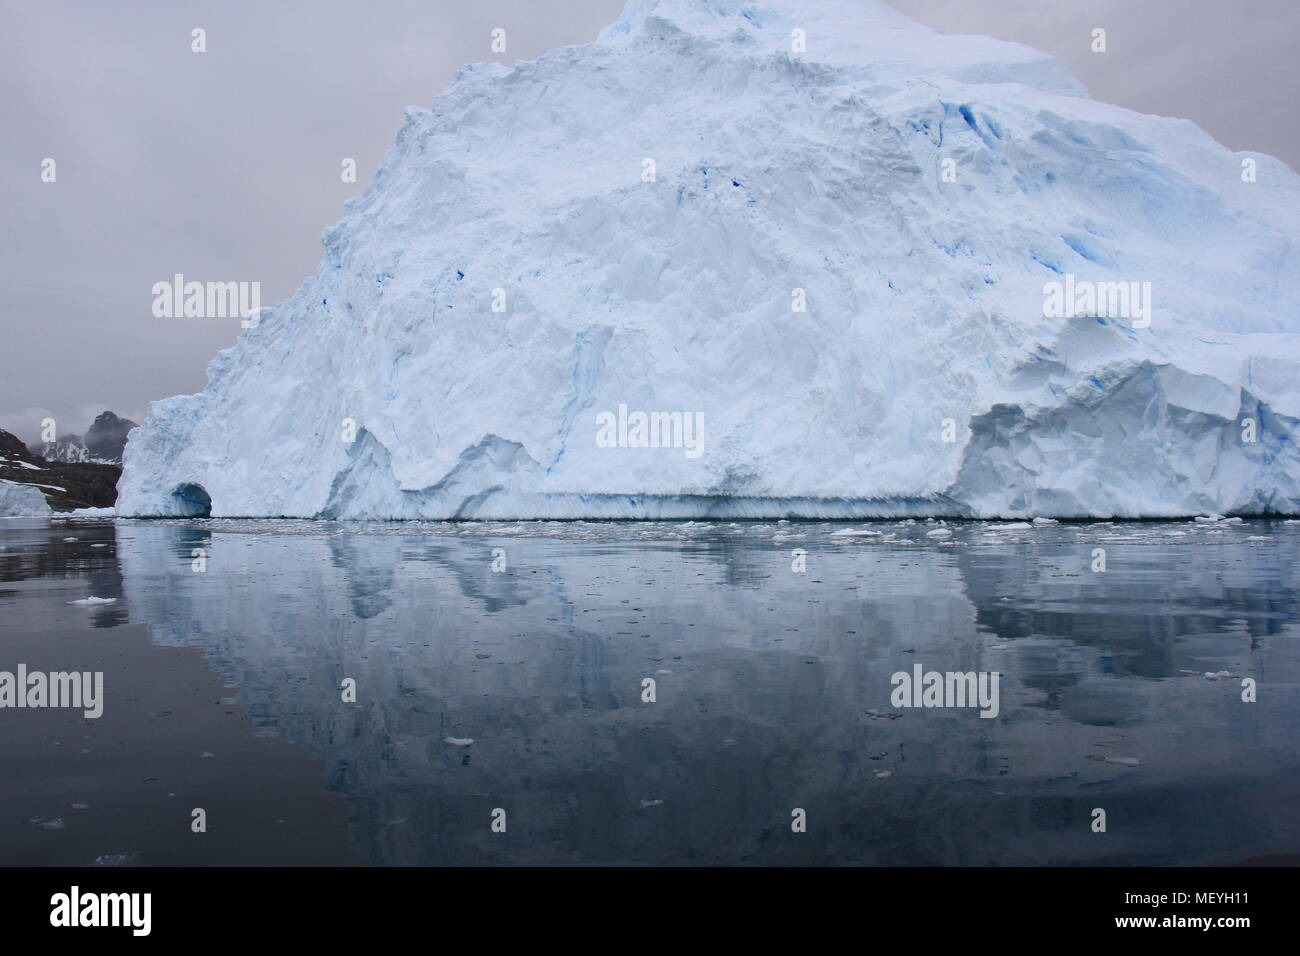 La glace de l'Antarctique Photo Stock